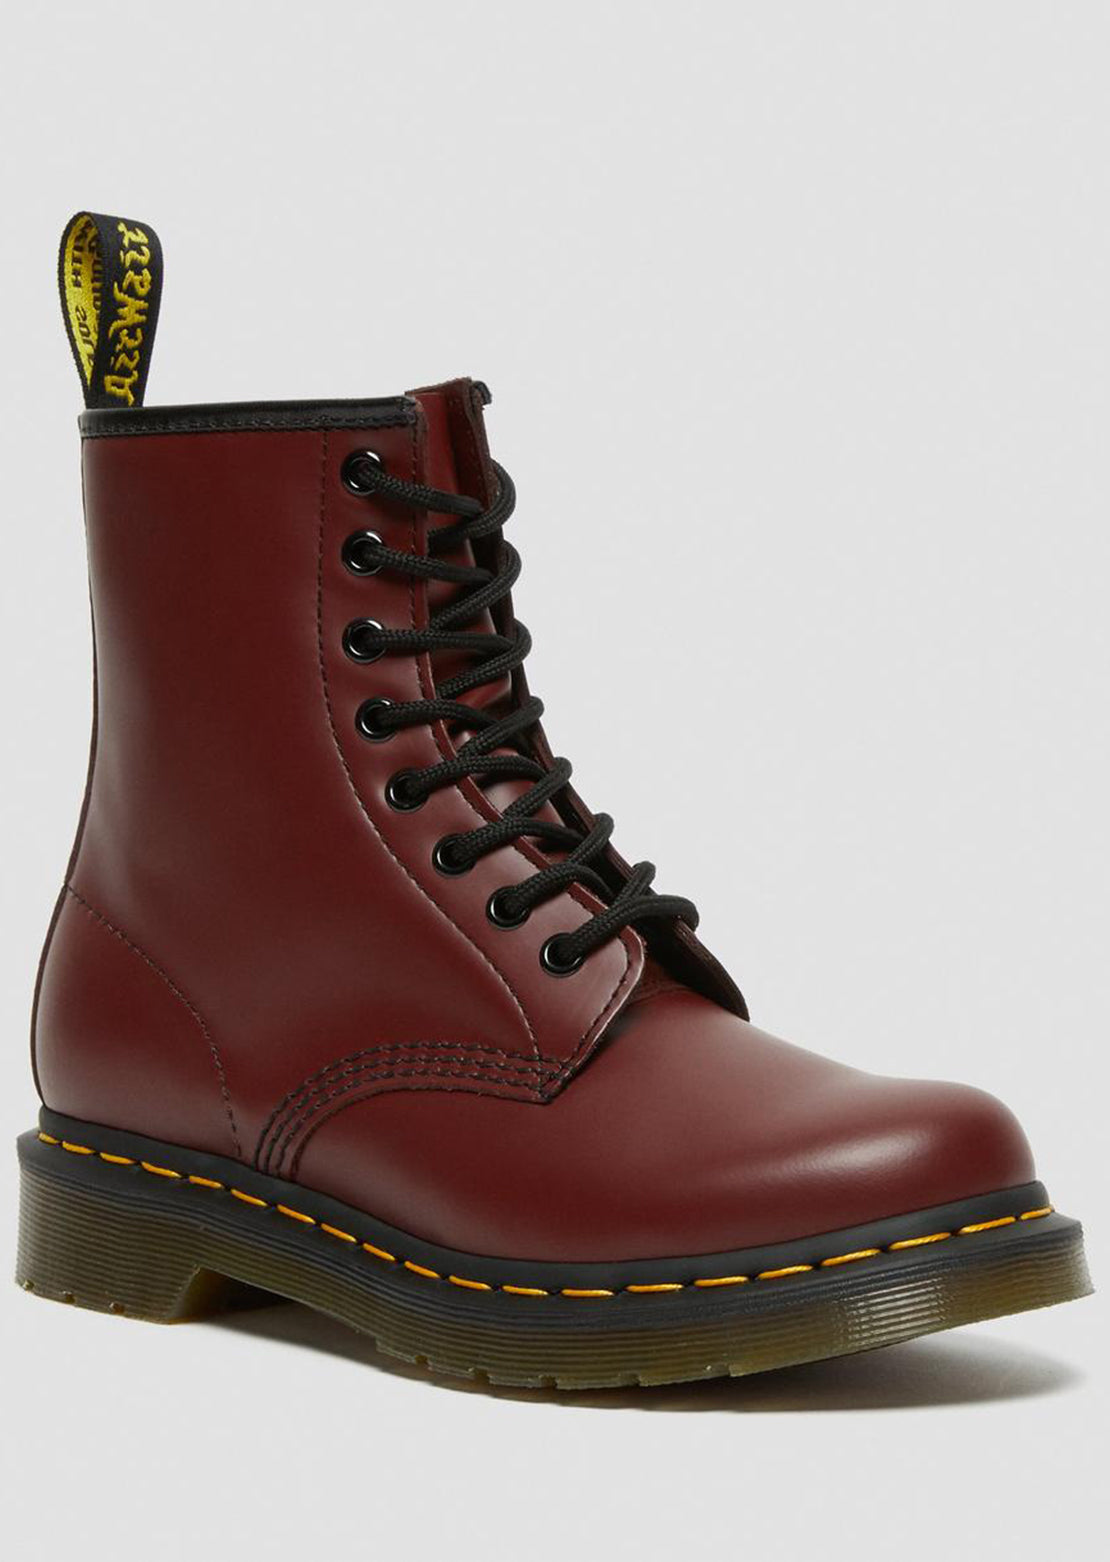 Dr.Martens Women's 1460 Boots Smooth Cherry Red